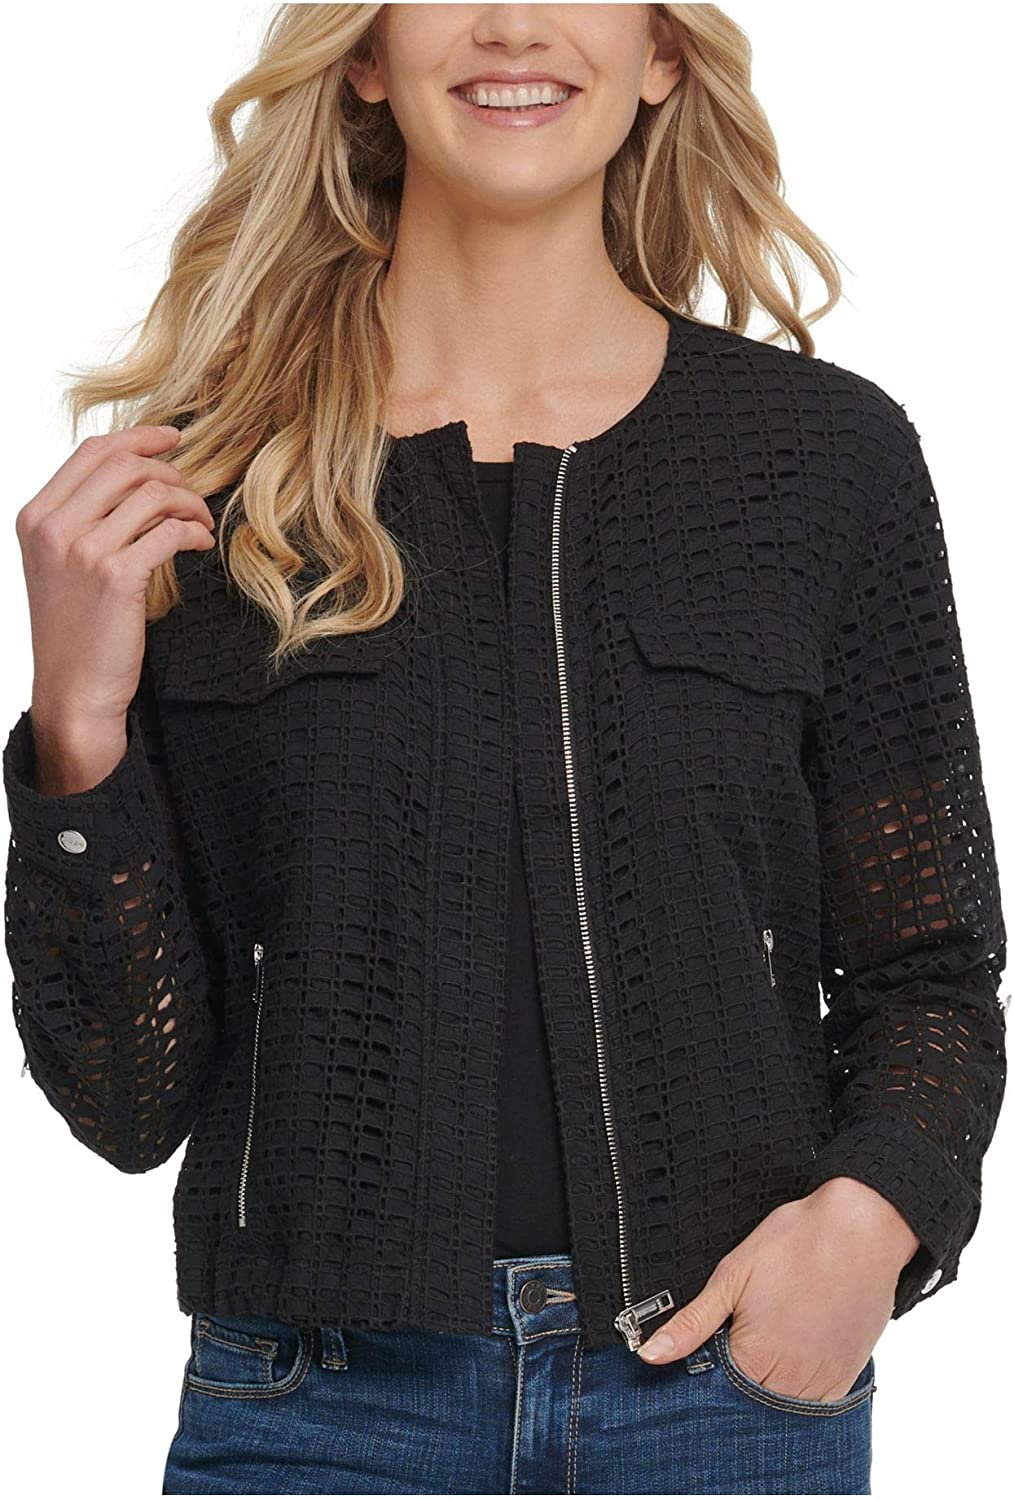 DKNY Womens Cold Weather Crochet Jacket